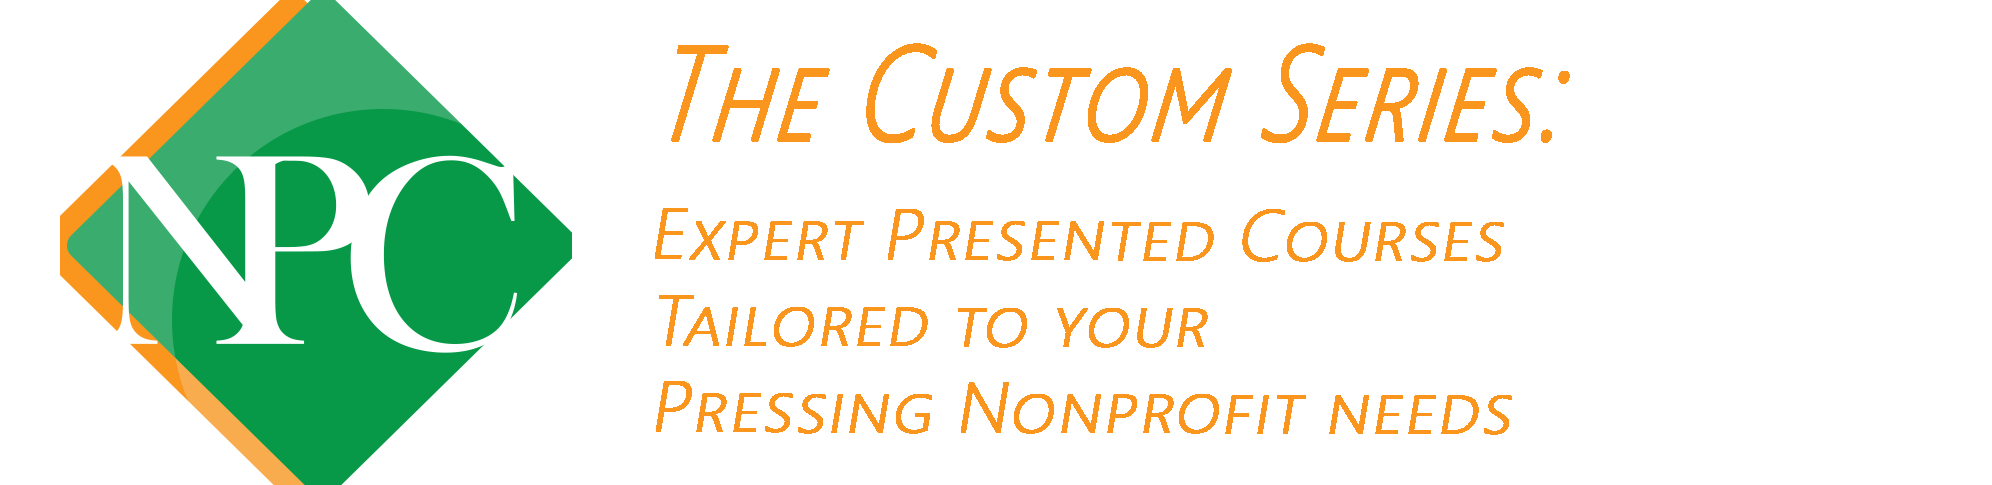 Custom Training in Nonprofit Marketing